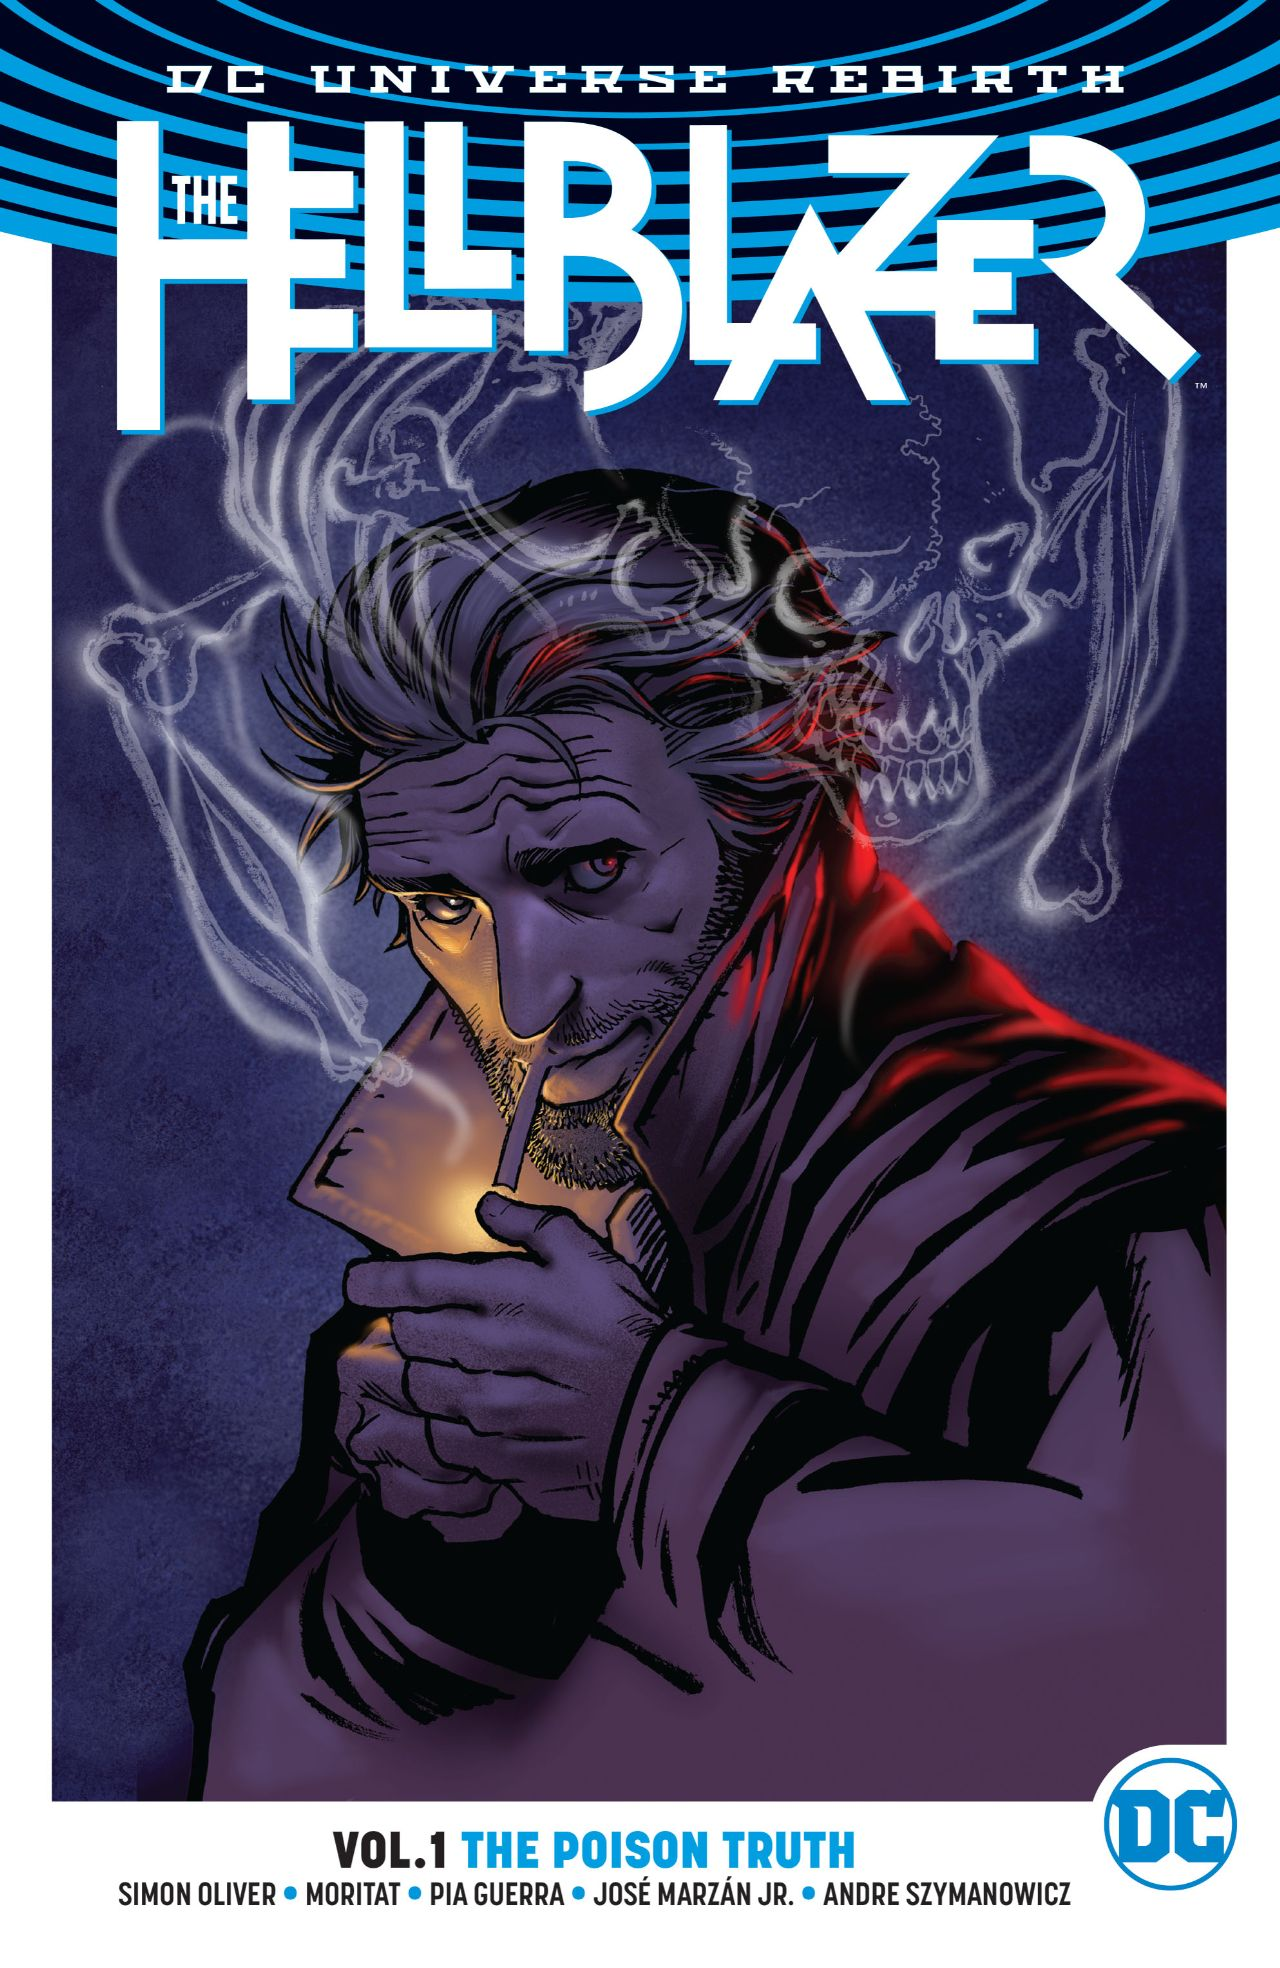 The Hellblazer Vol. 1: The Poison Truth Review